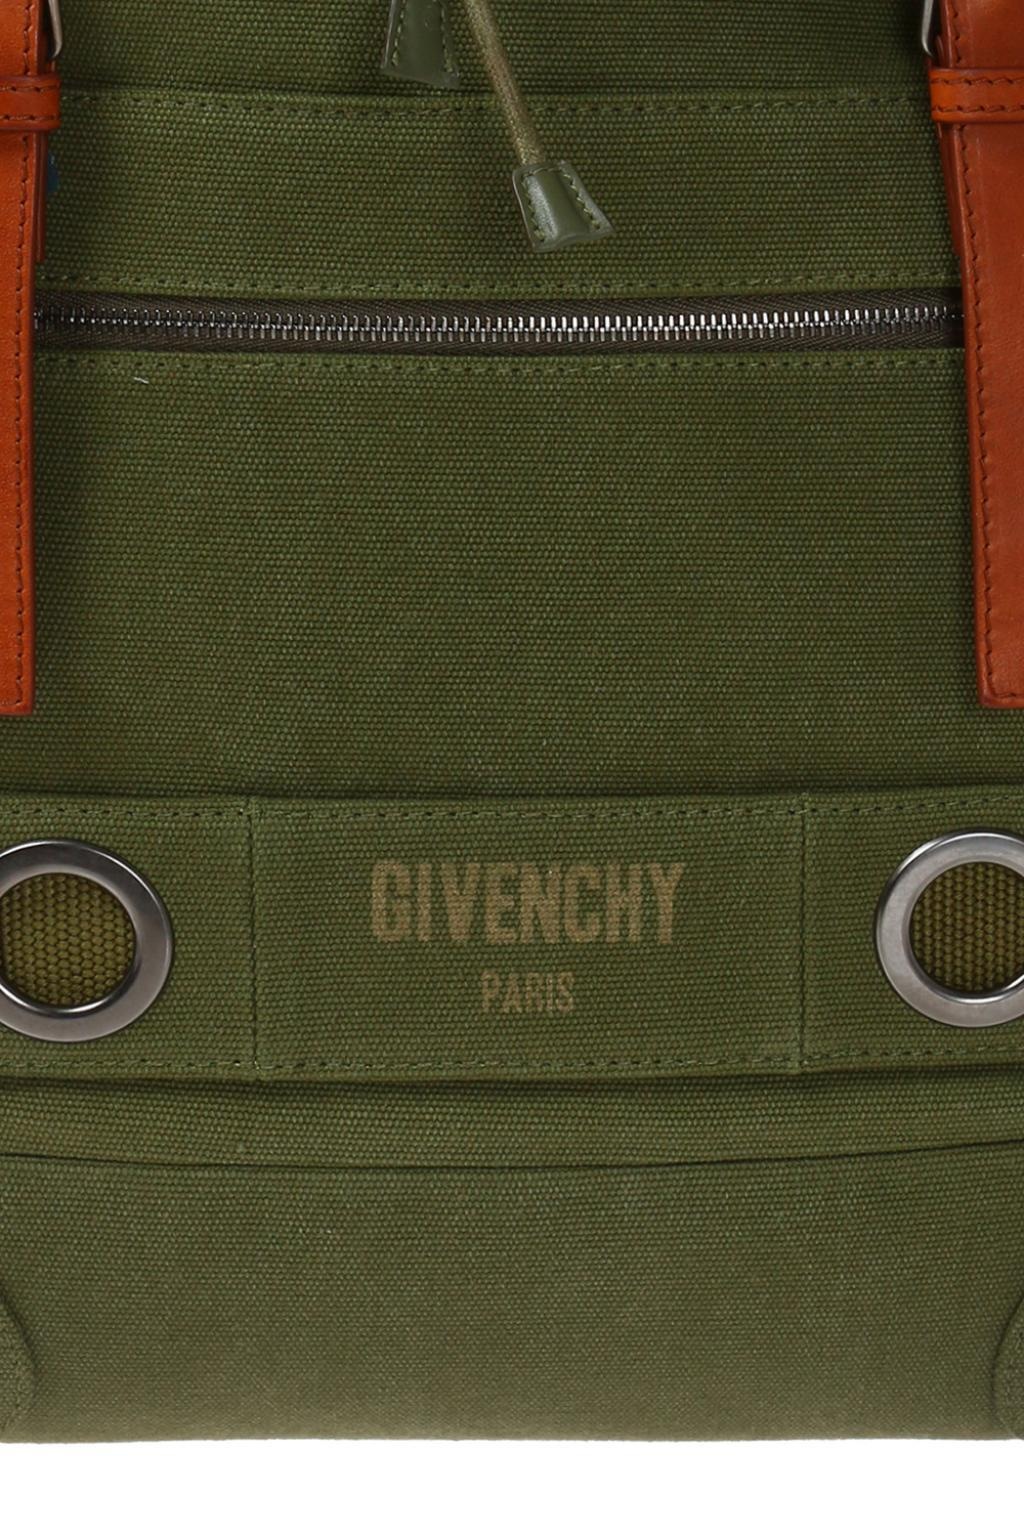 Givenchy Cotton 'military' Backpack in Green for Men